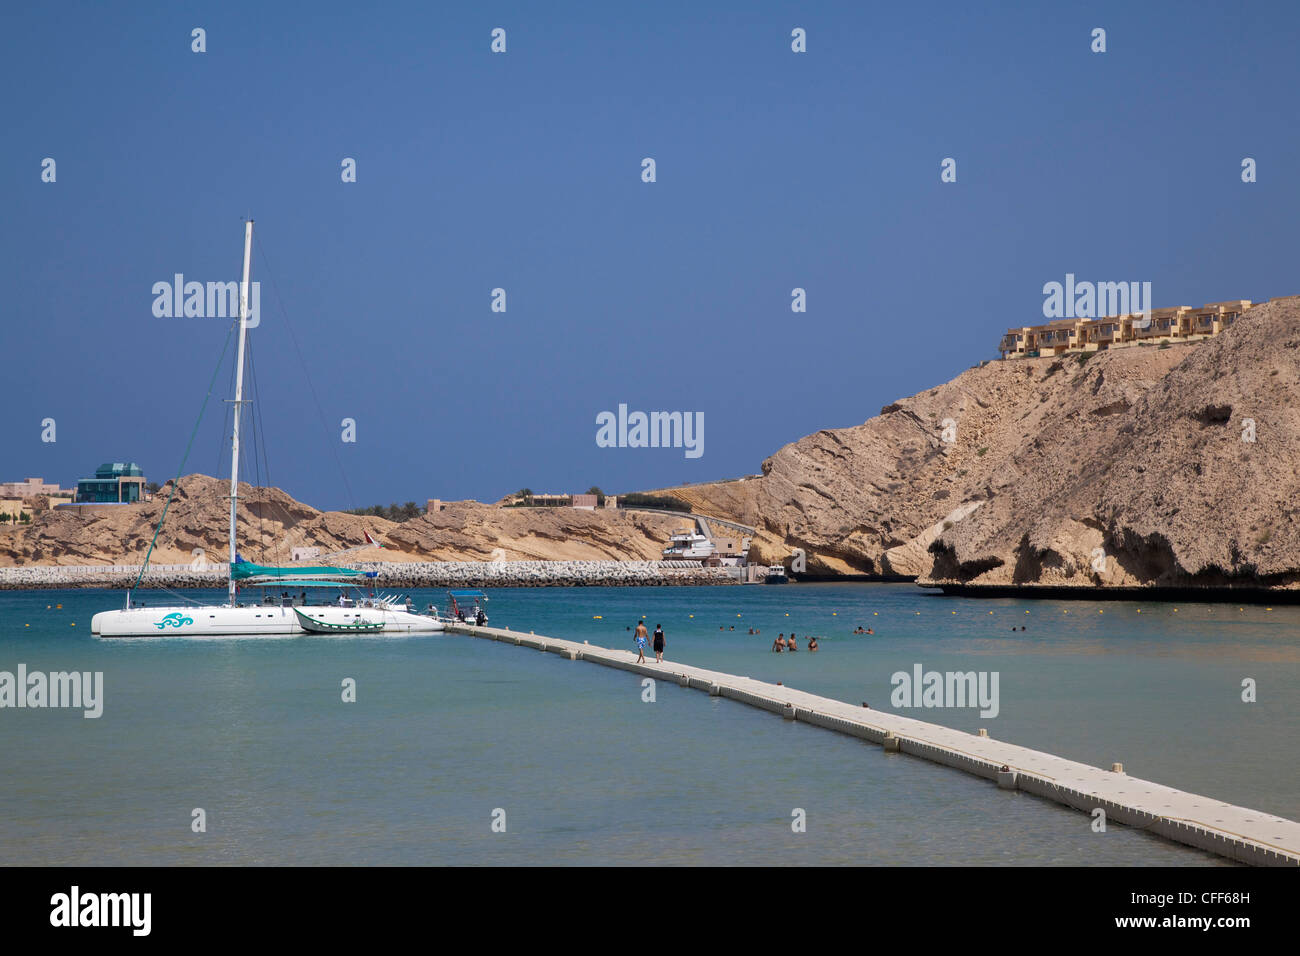 Catamaran SY Azzura, Ocean Blue Oman cruises, at pier of Oman Dive Centre, Muscat, Masqat, Oman, Arabian Peninsula - Stock Image